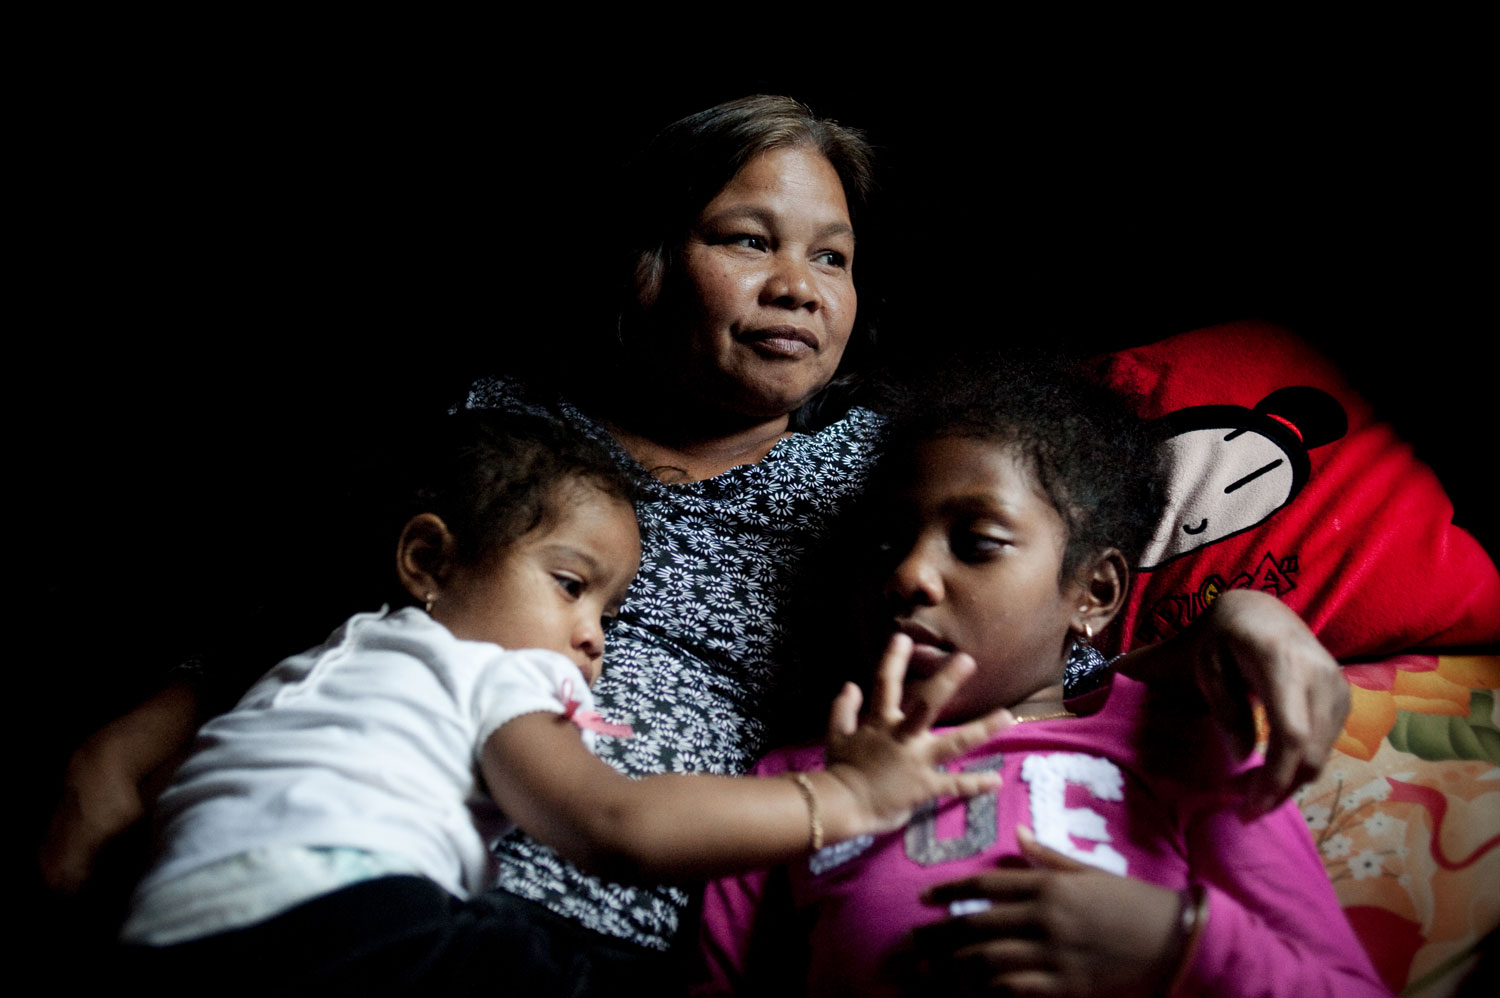 Bronx, New York City, September 2011.Chhan Hui, 59, lies down with her grandchildren, Keinna Lawrence, 2, and Shania Brown, 6, in the living room of their Bronx apartment. Hui immigrated to the States in 1982 and, along with a sister, is the only survivor of her immediate family.